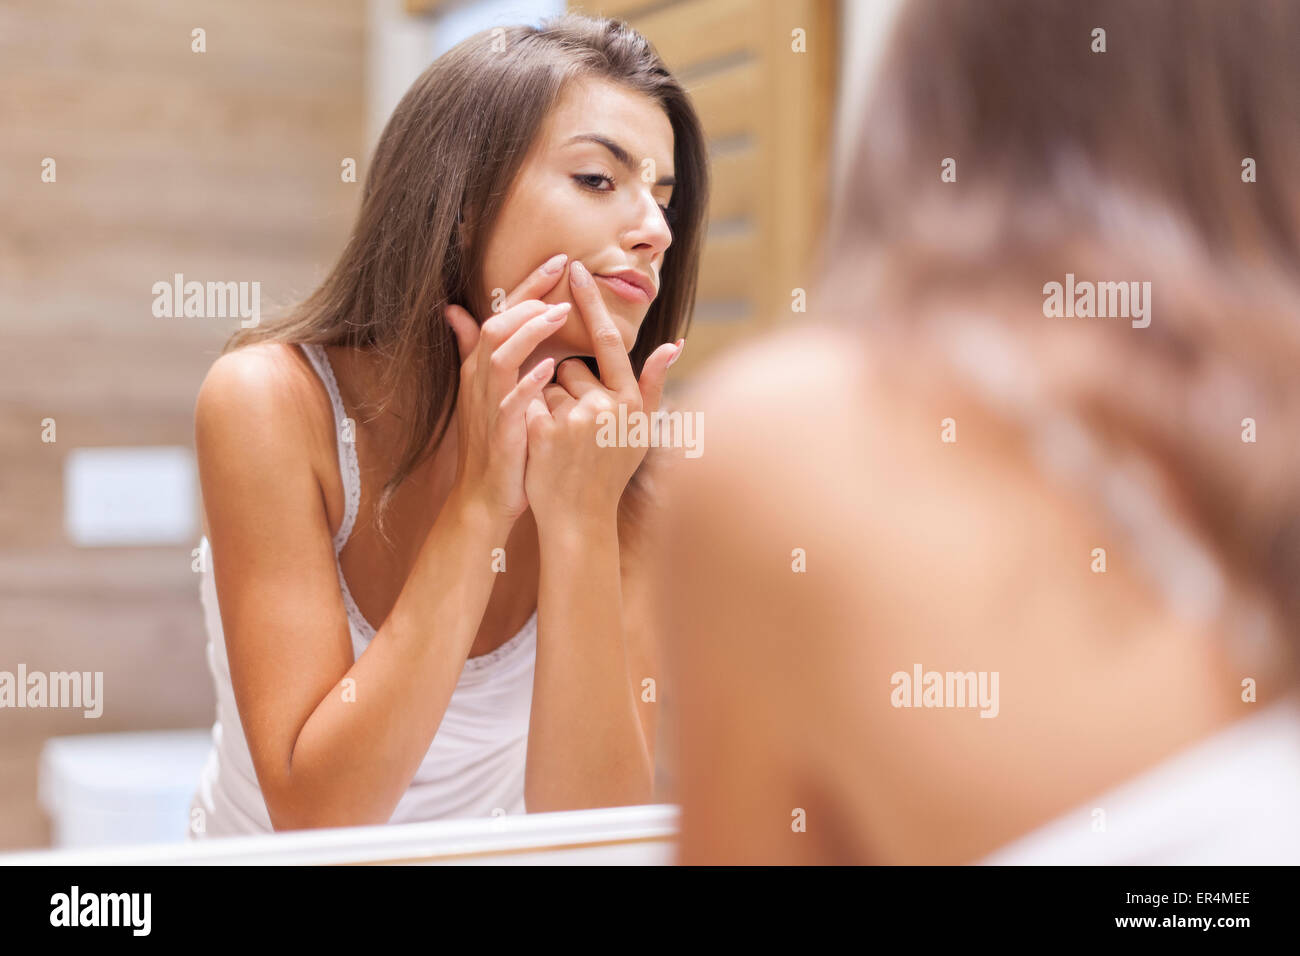 Young woman has problems with skin on the face. Debica, Poland - Stock Image